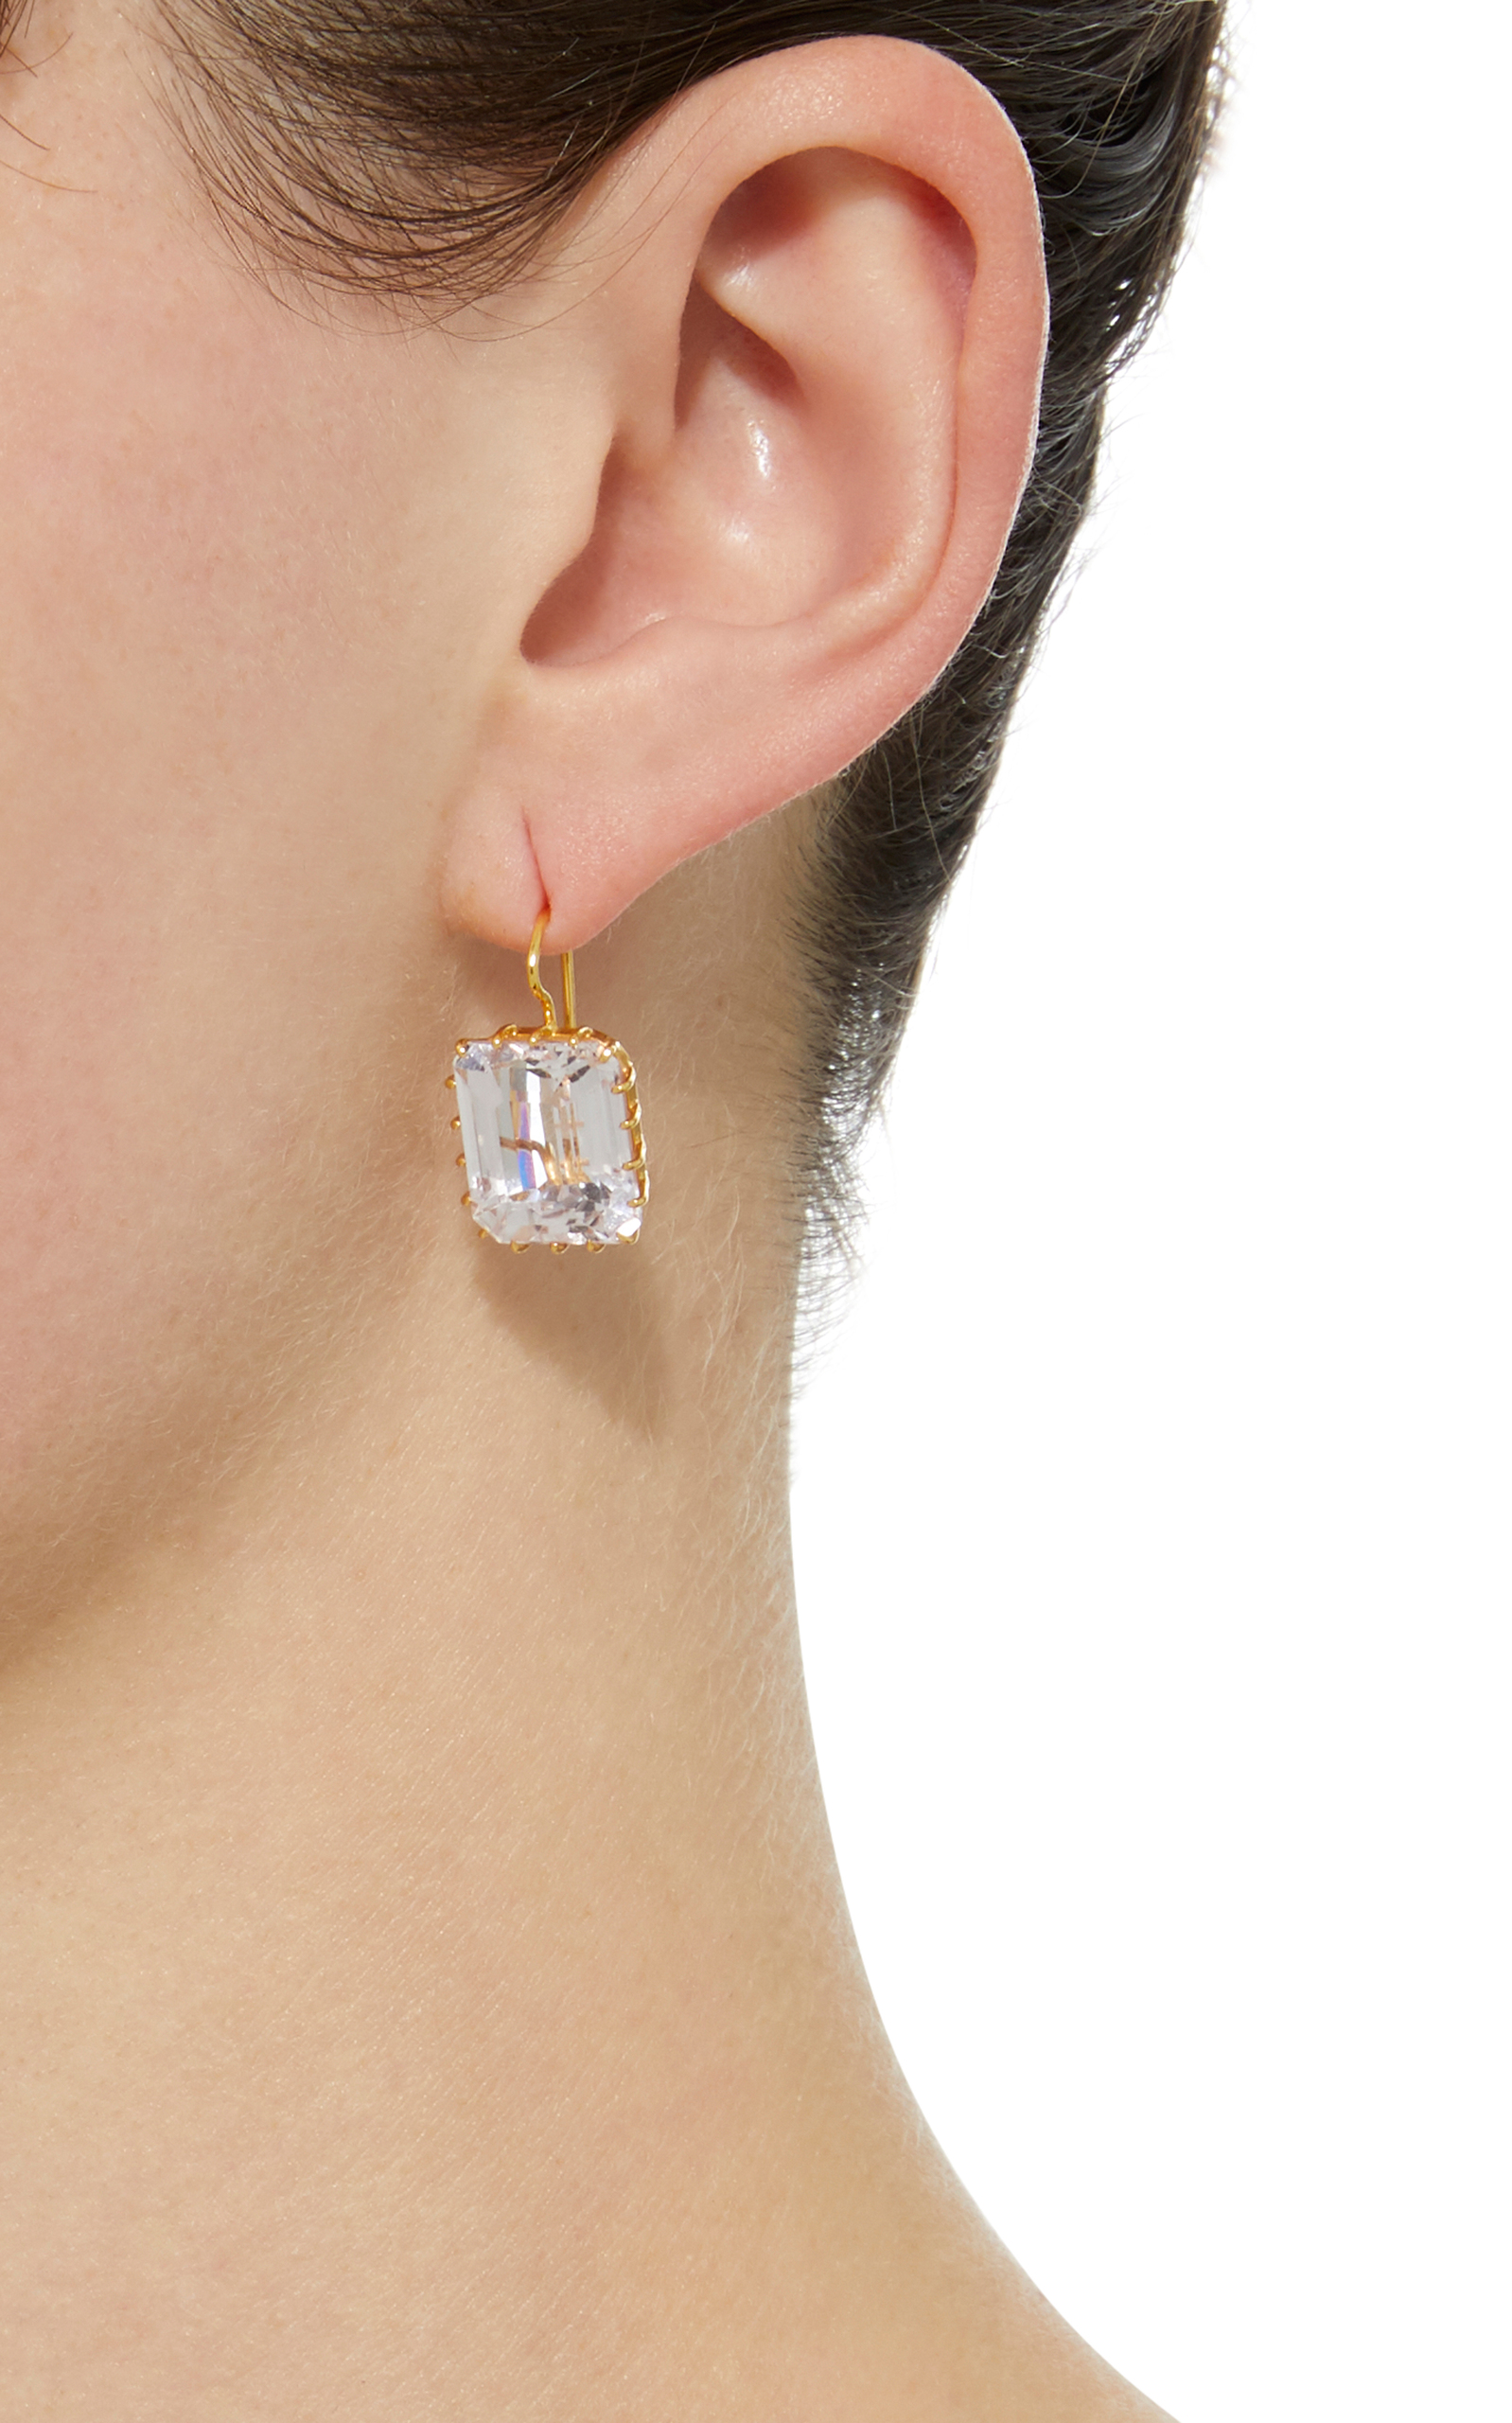 archives stud jewellery amethyst lav kunzite earrings collections category product studs square default kiki lavender mcdonough sloane am grace london